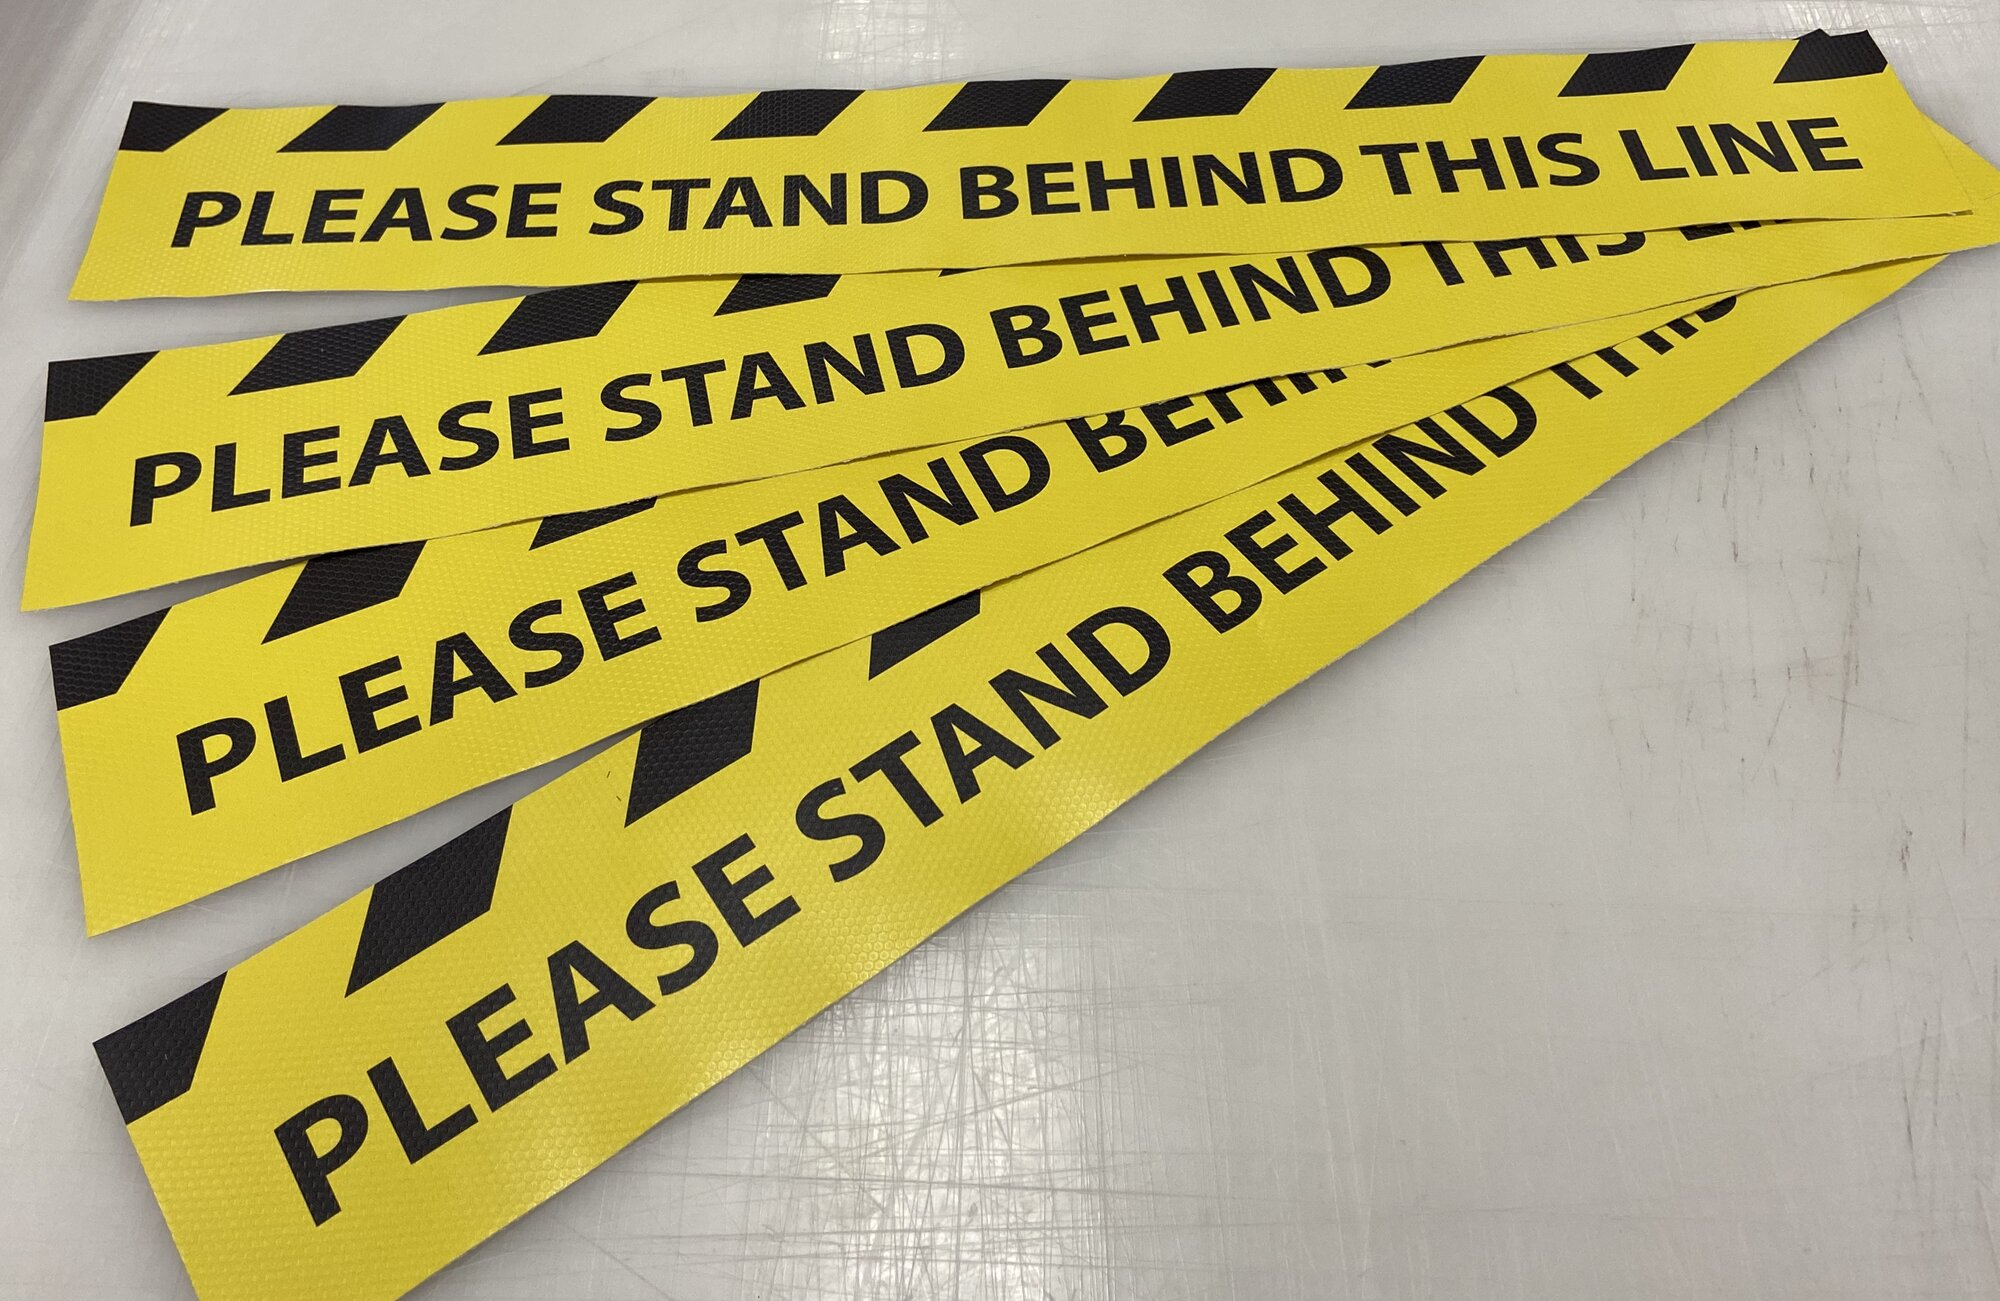 Please stand behind the line